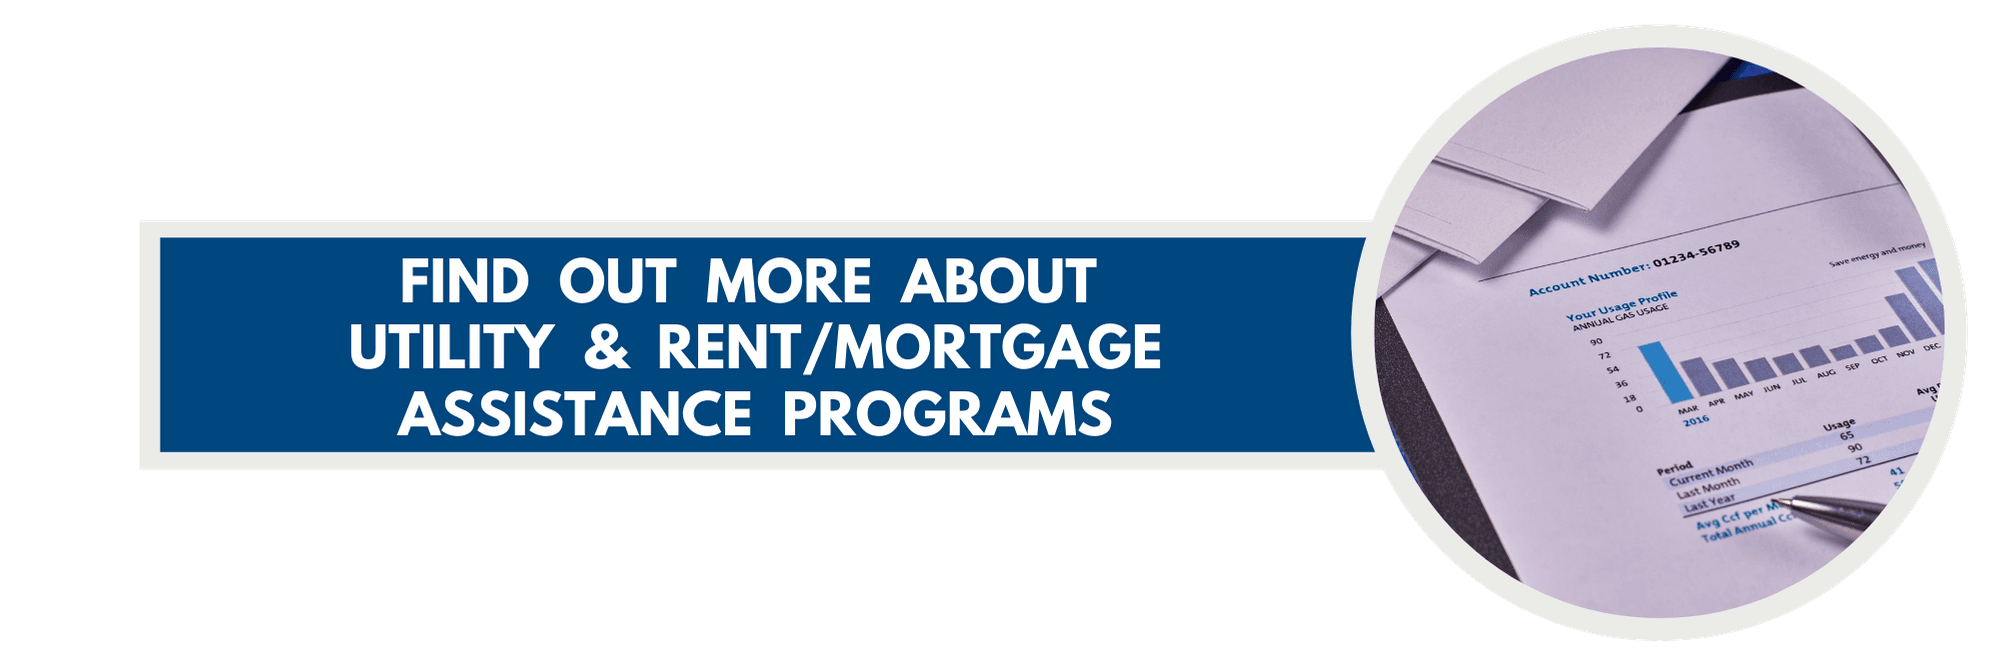 Utility and Rent.Mortgage Assistance Program